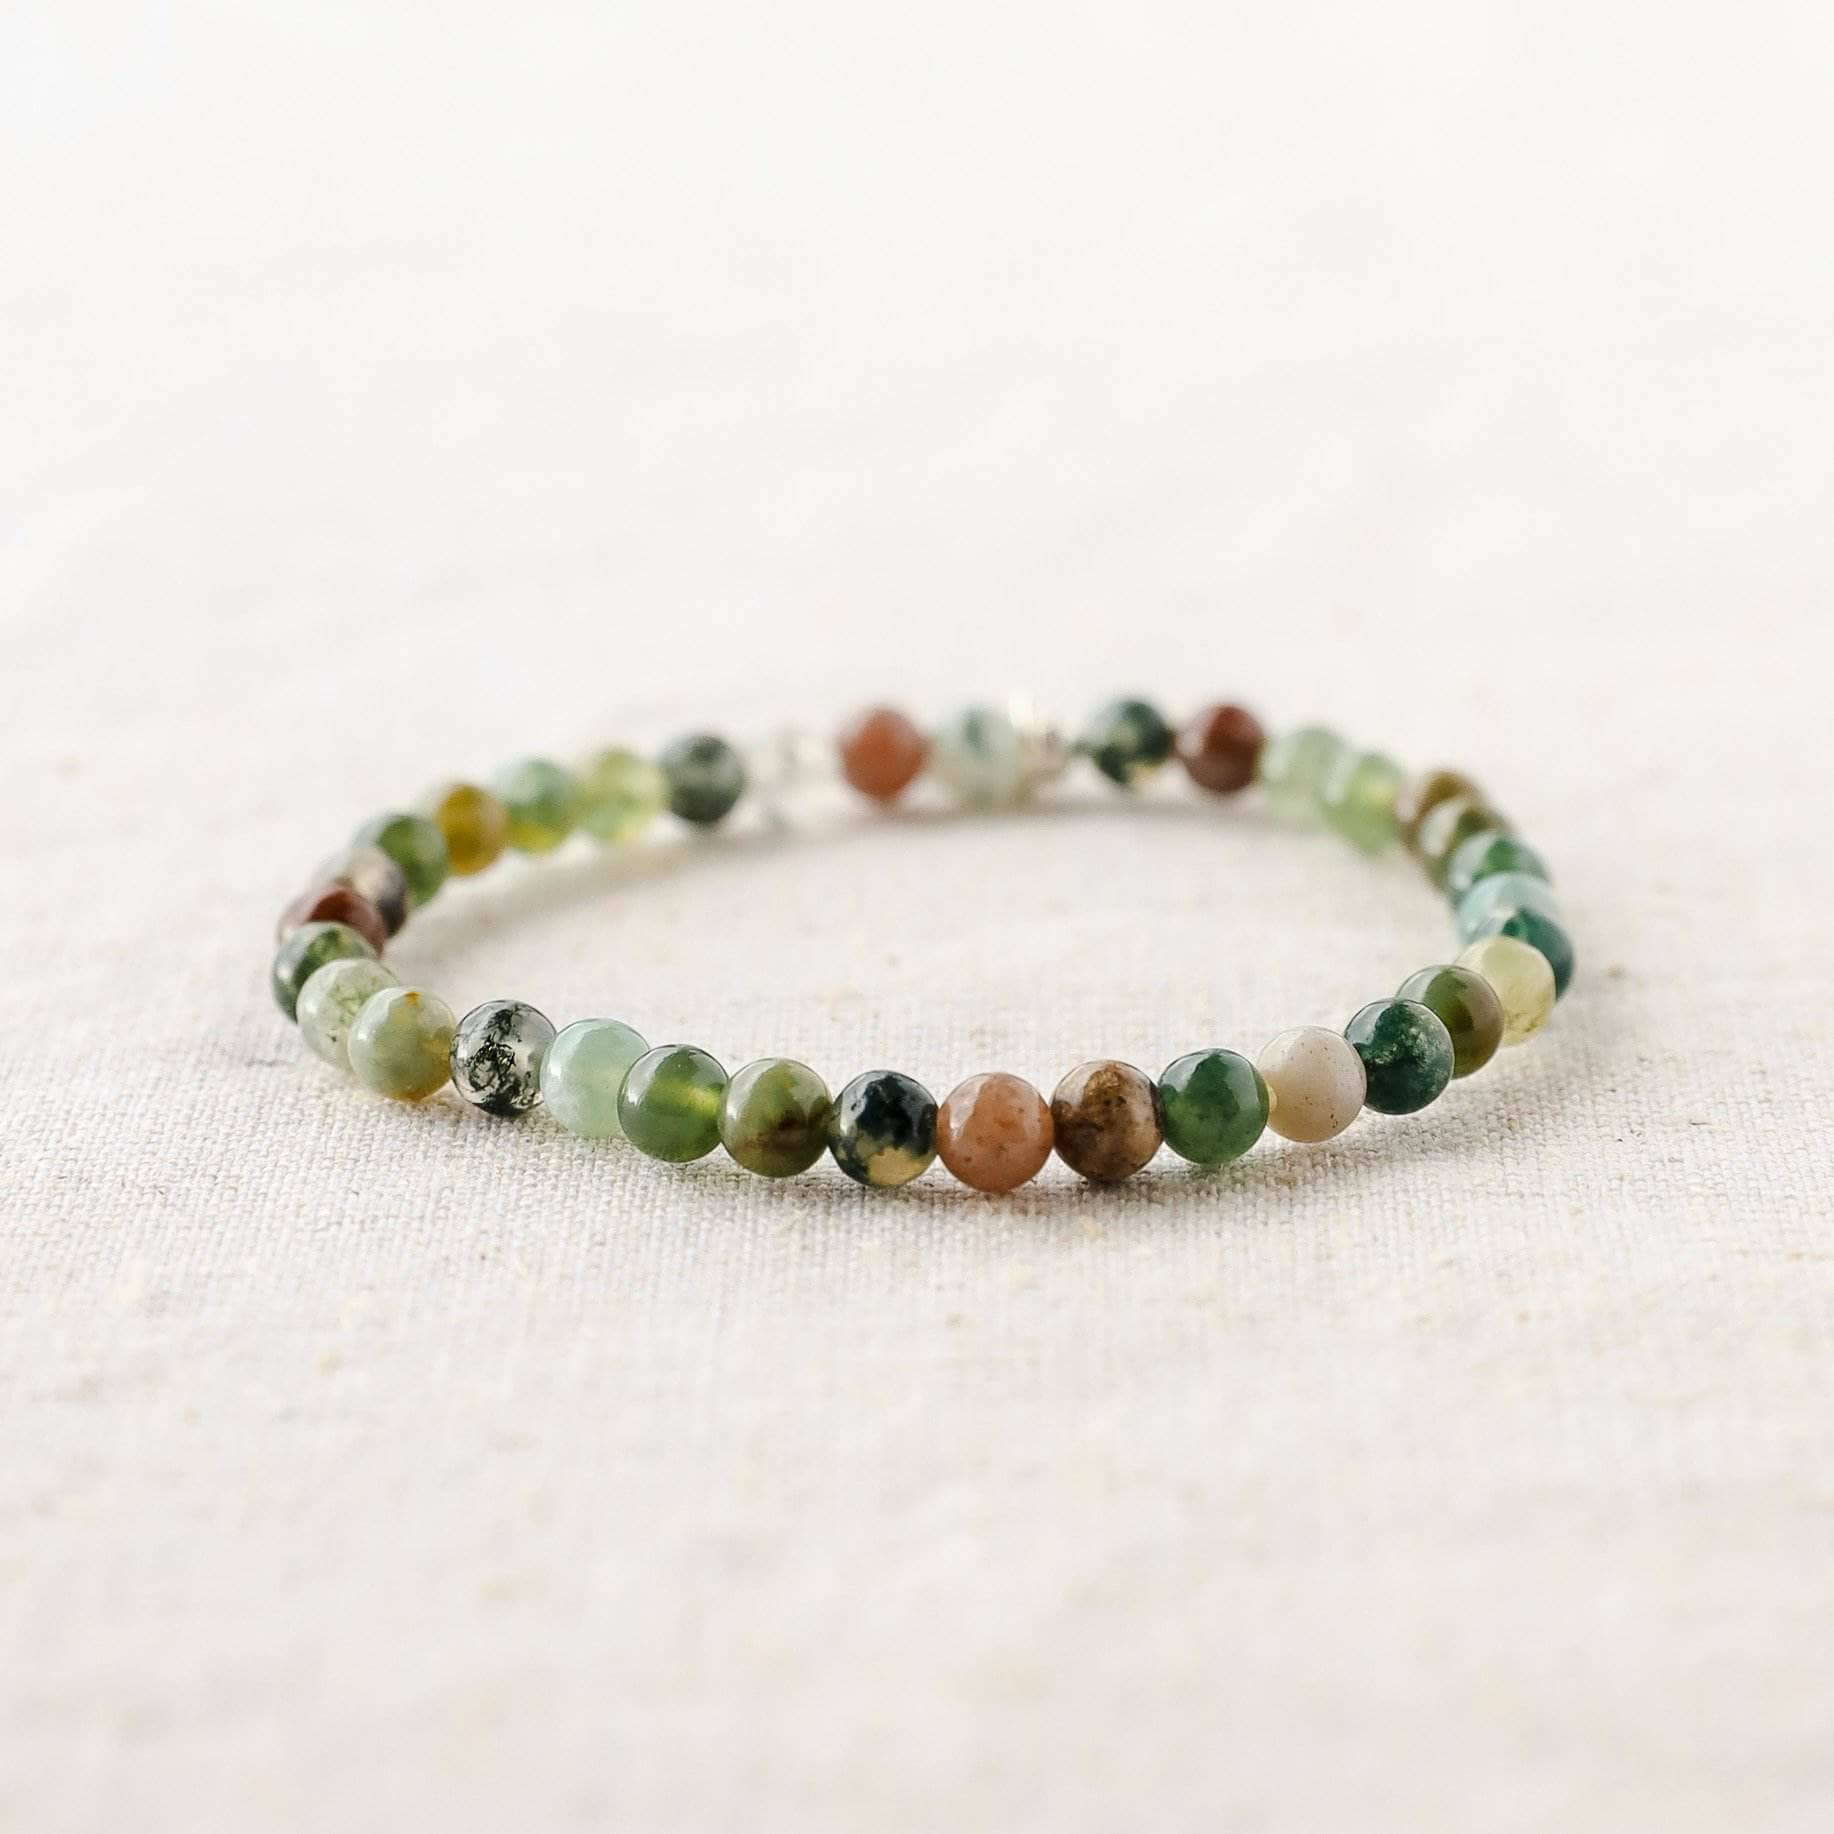 Indian Agate Energy Bracelet